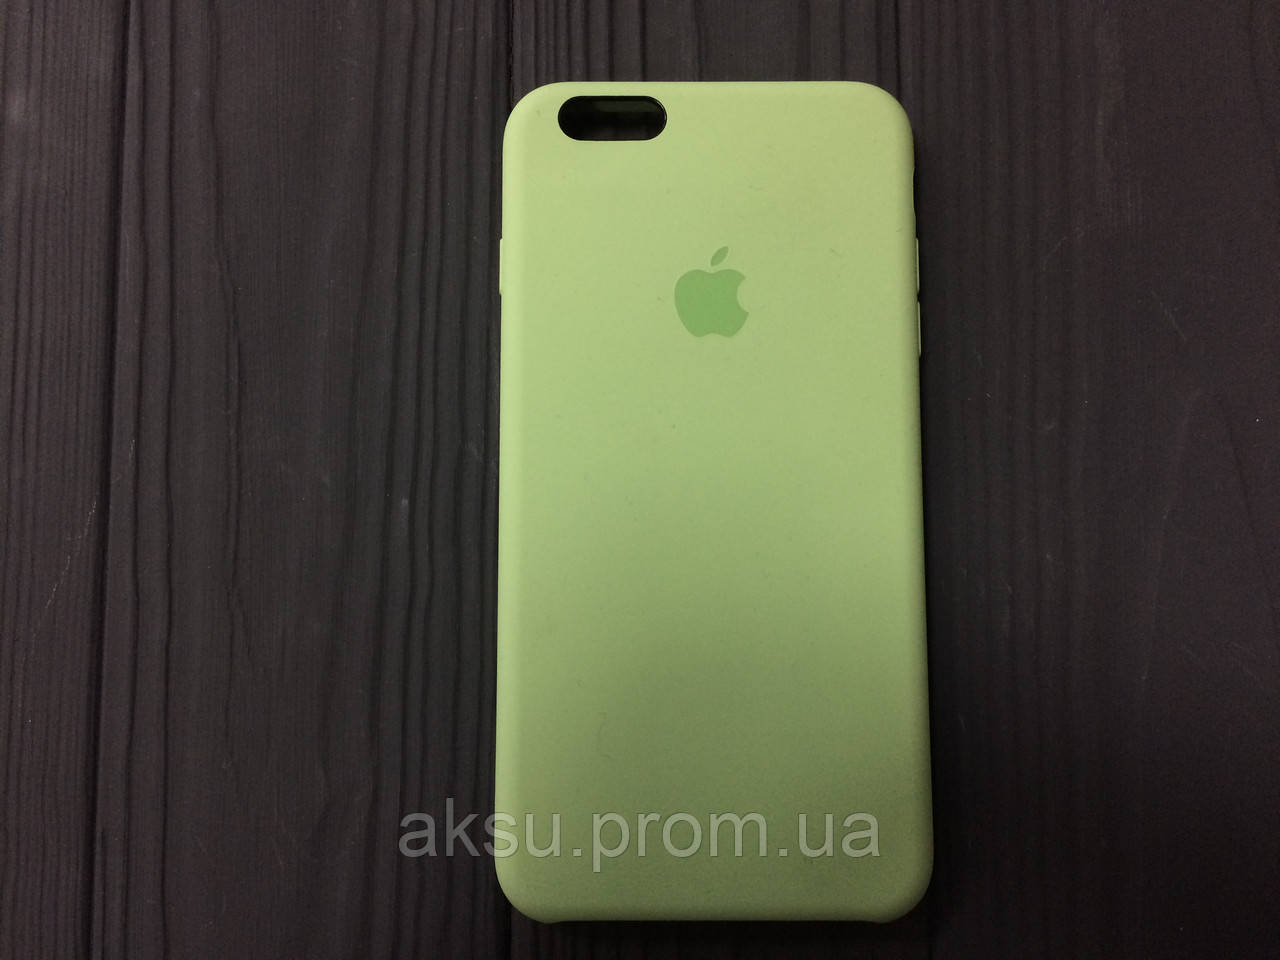 Чехол Silicone case для iPhone 6 Plus / 6s Plus